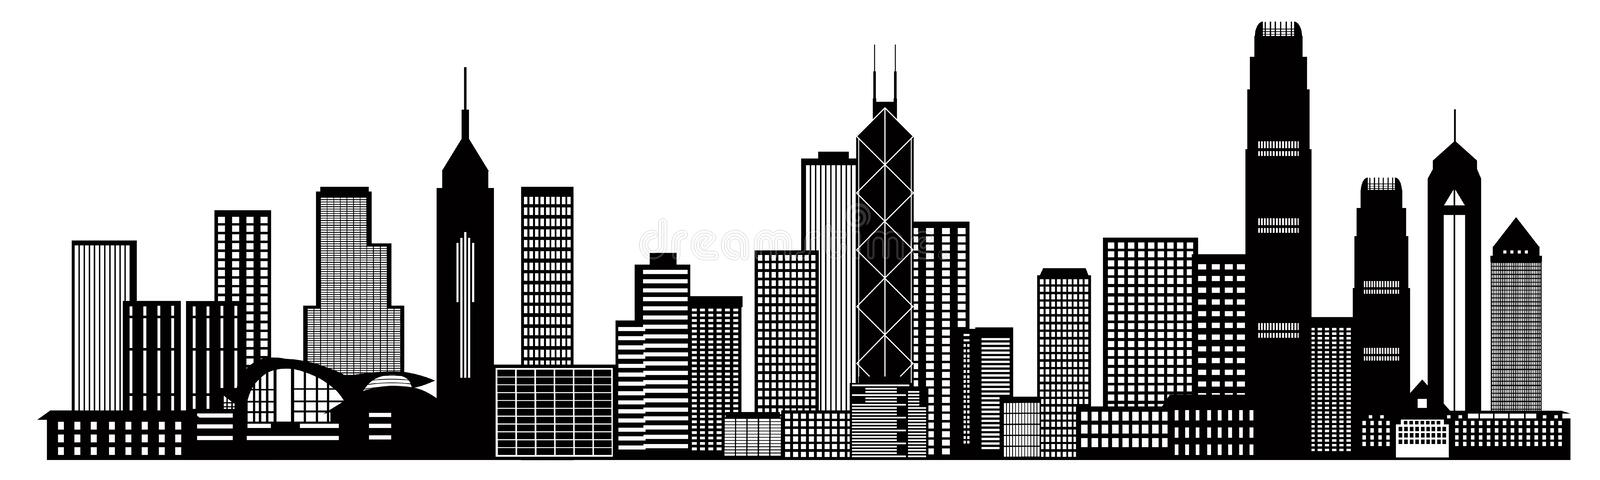 Hong Kong City Skyline Black y ejemplo blanco del vector libre illustration